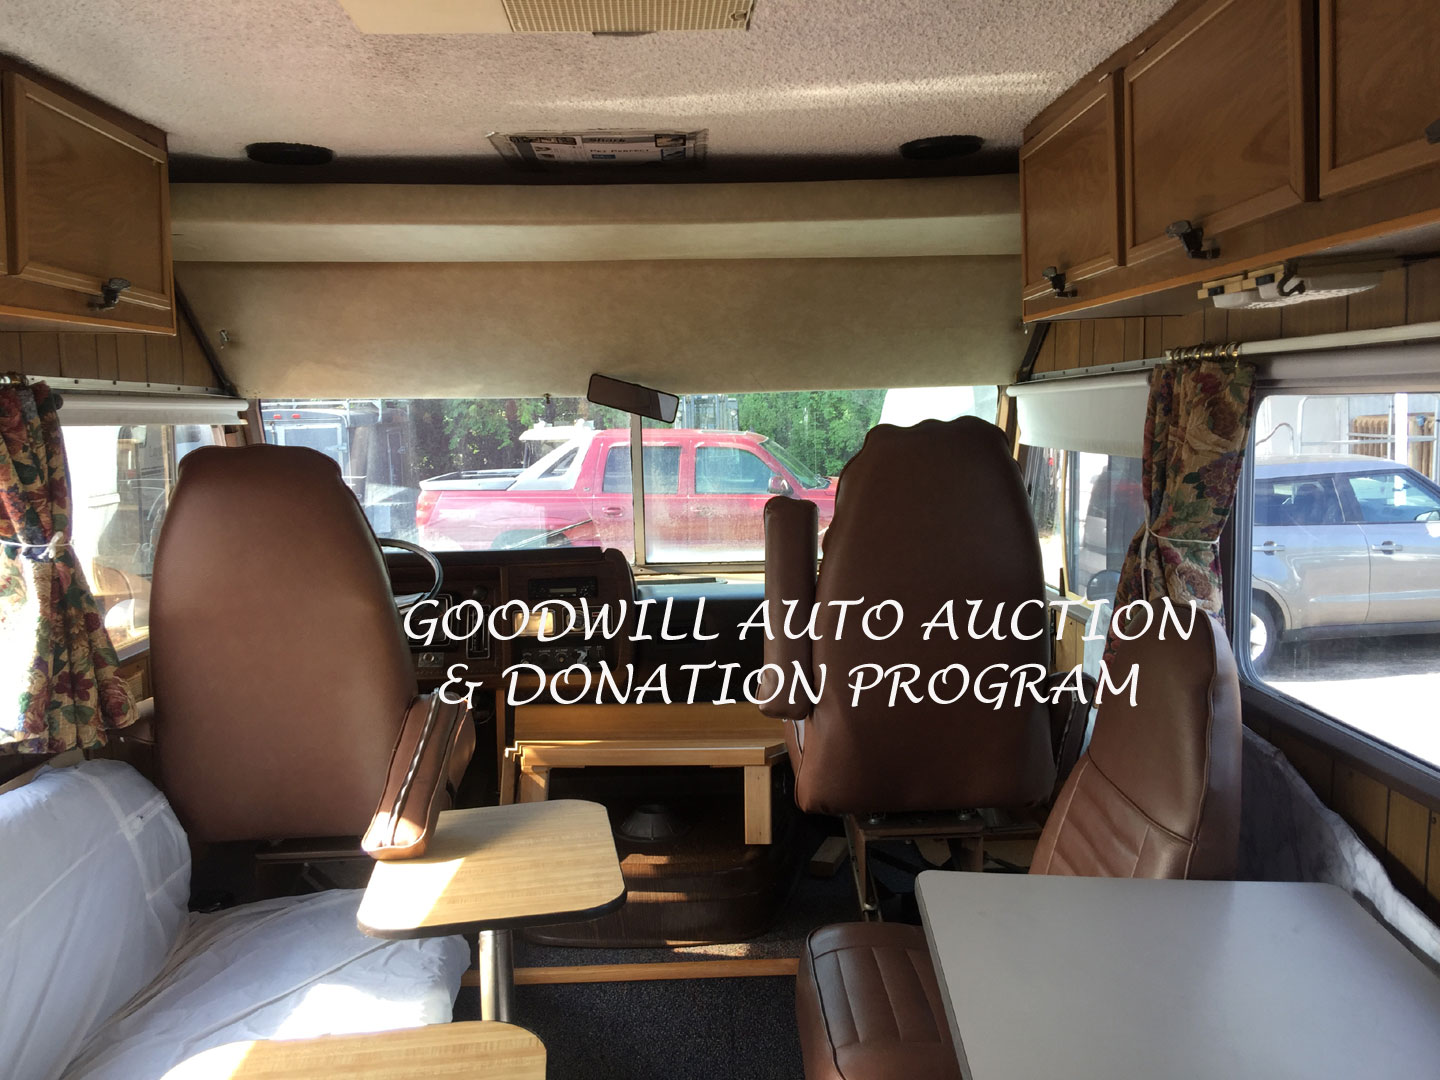 1976 CHAMPION 922 22FT MOTOR HOME - Goodwill Auto Auction